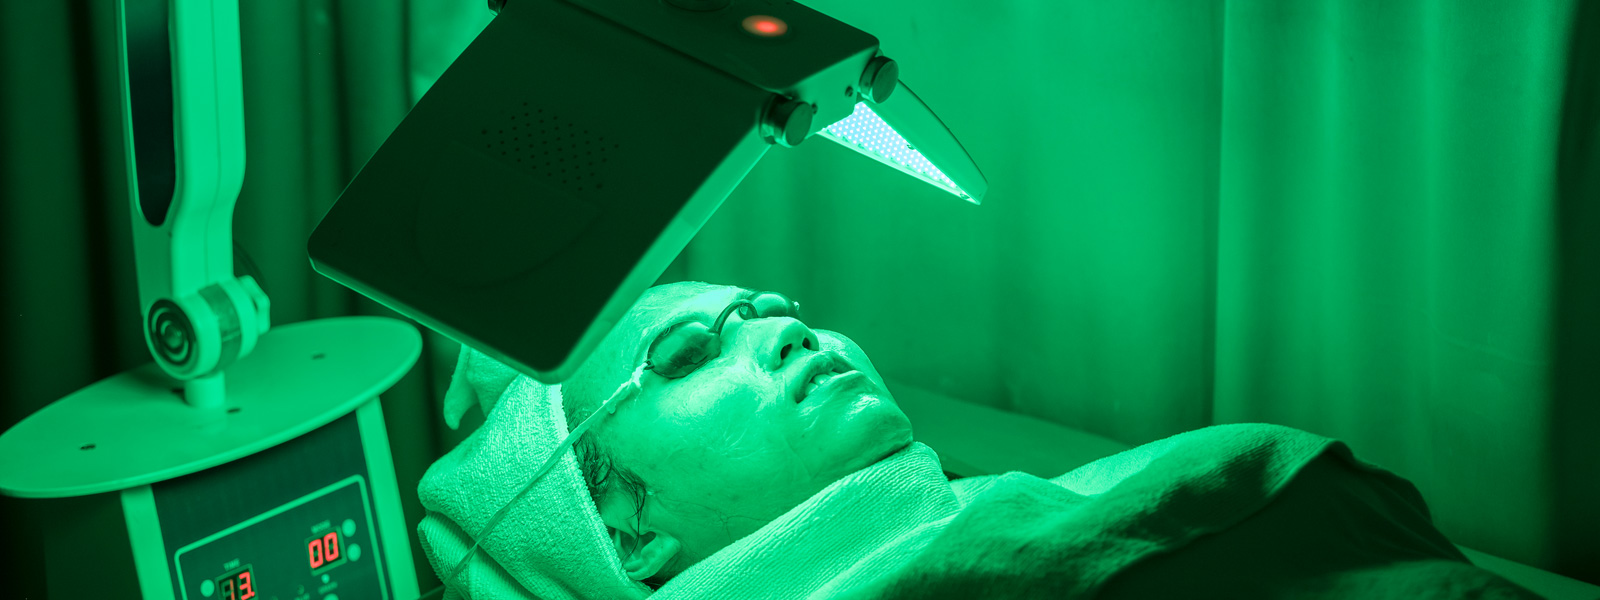 A Patient Getting Photodynamic Therapy Done